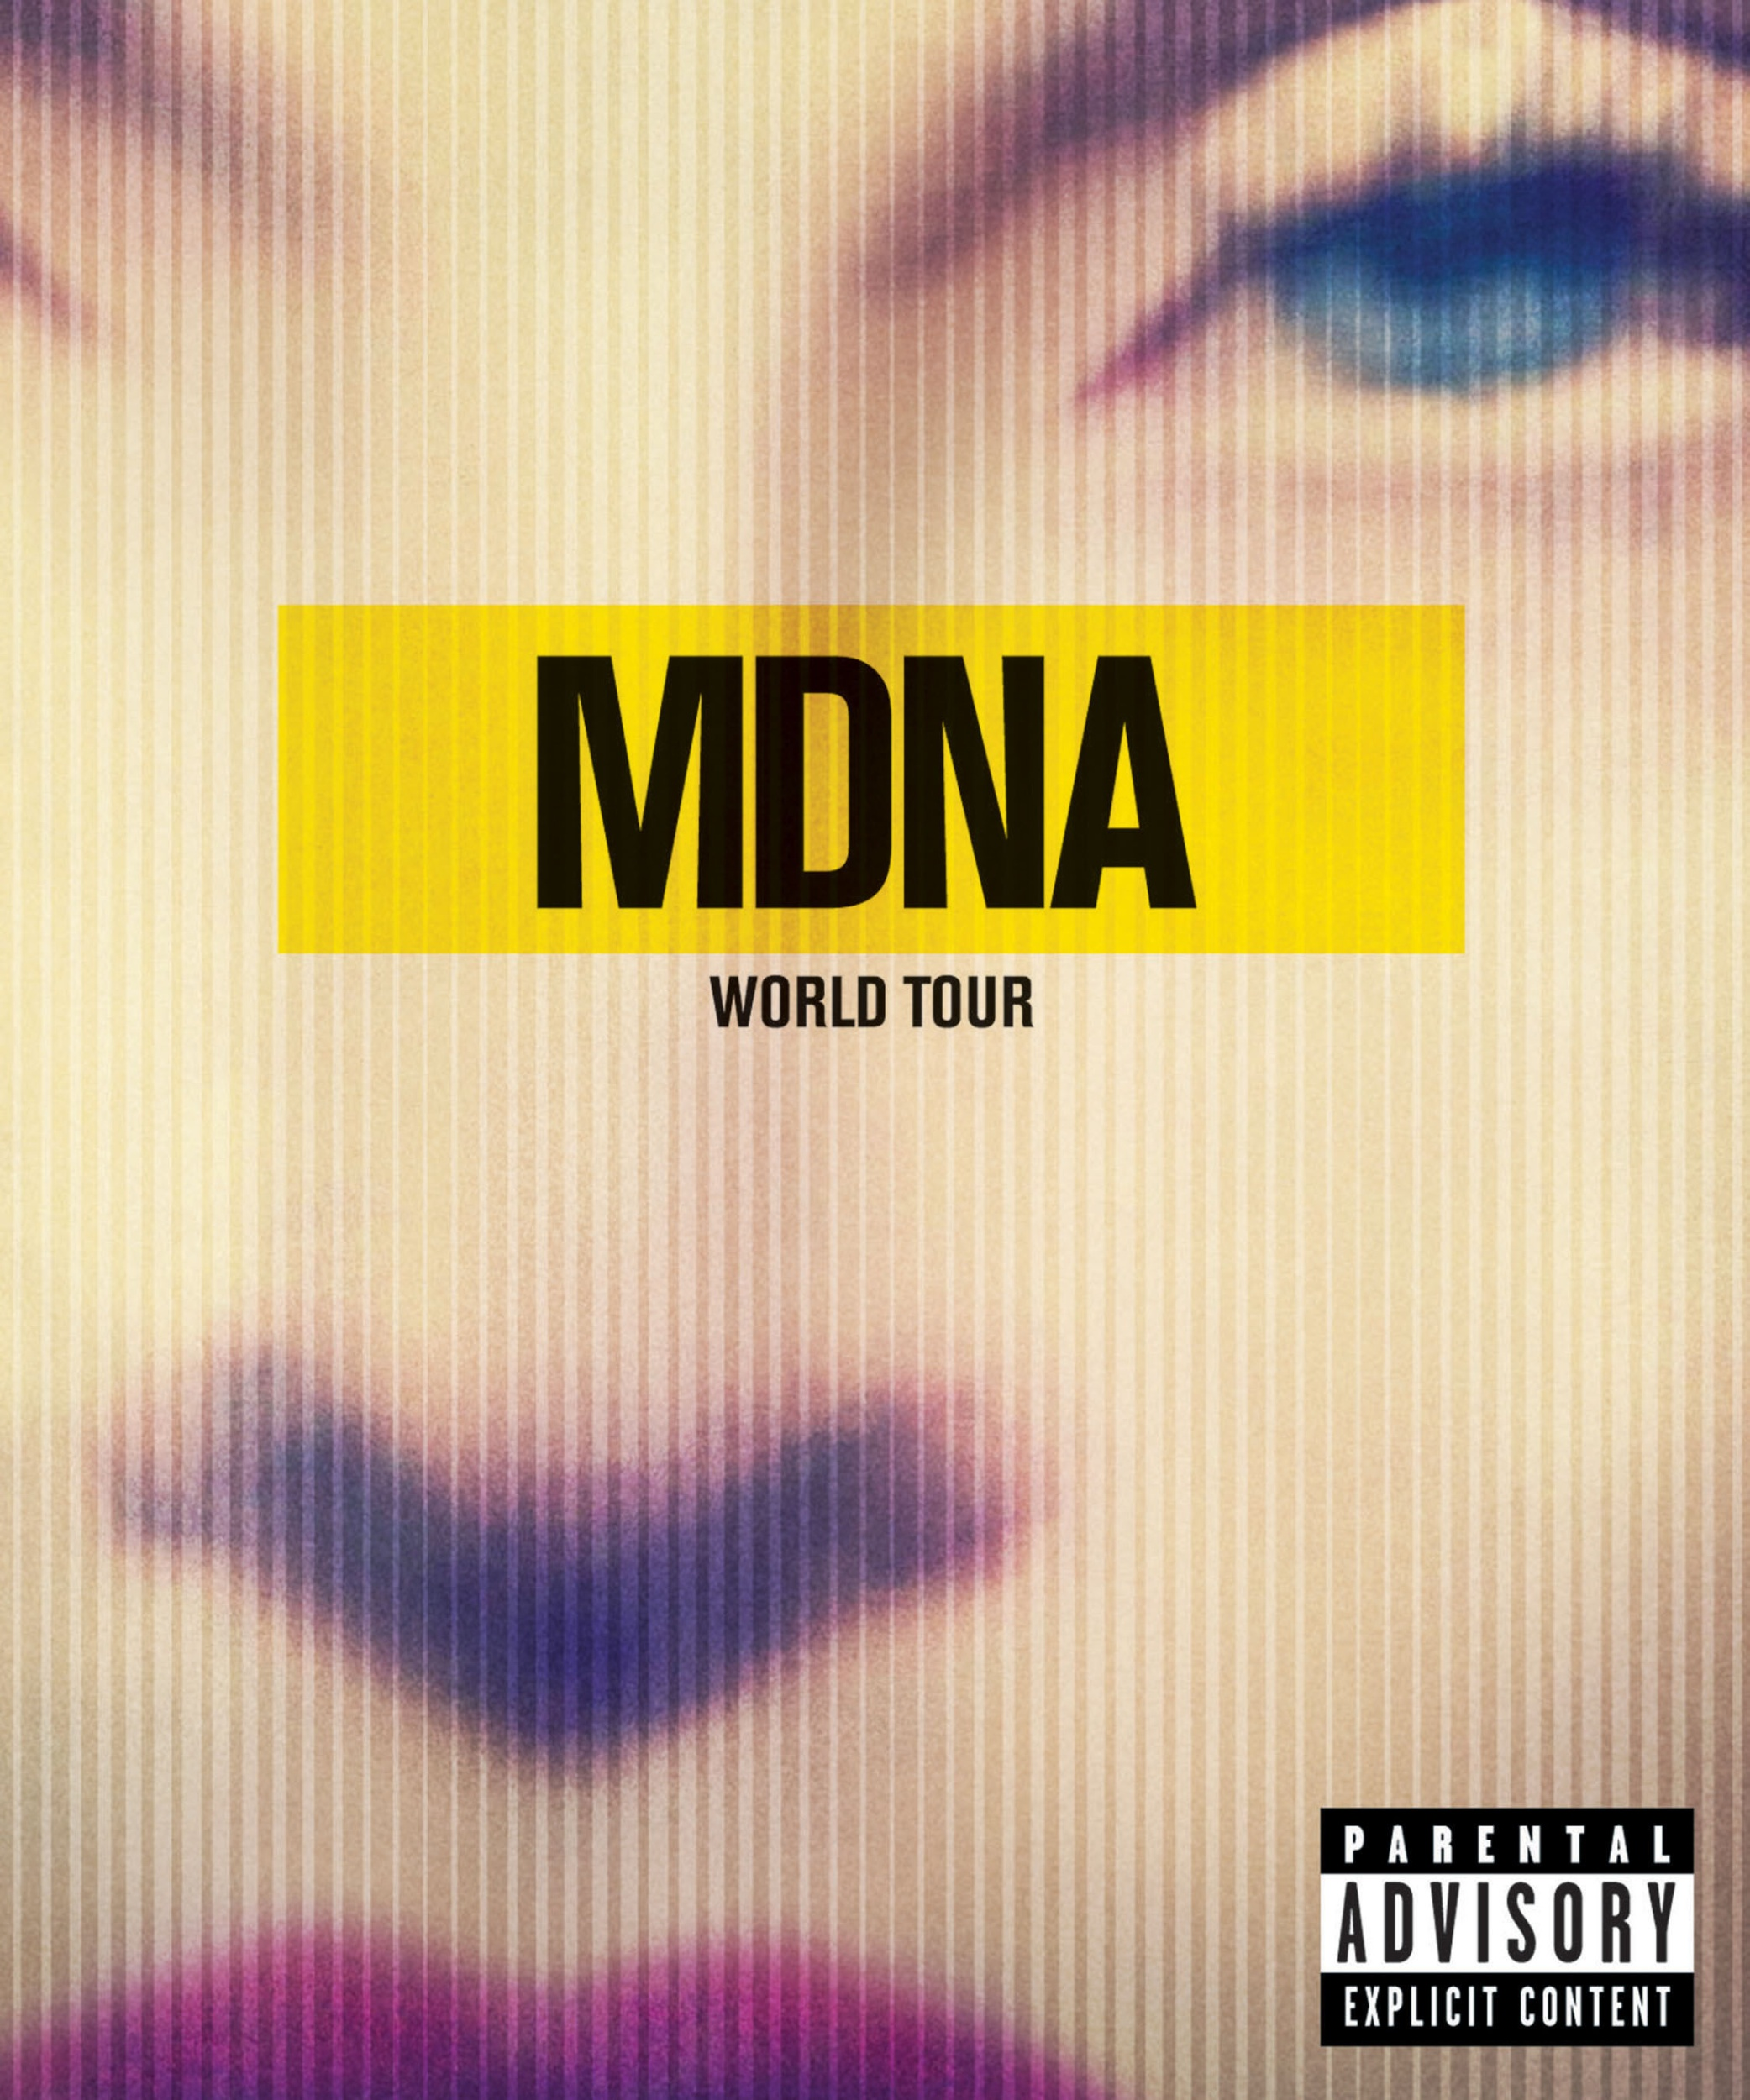 20130808-pictures-madonna-mdna-tour-offi